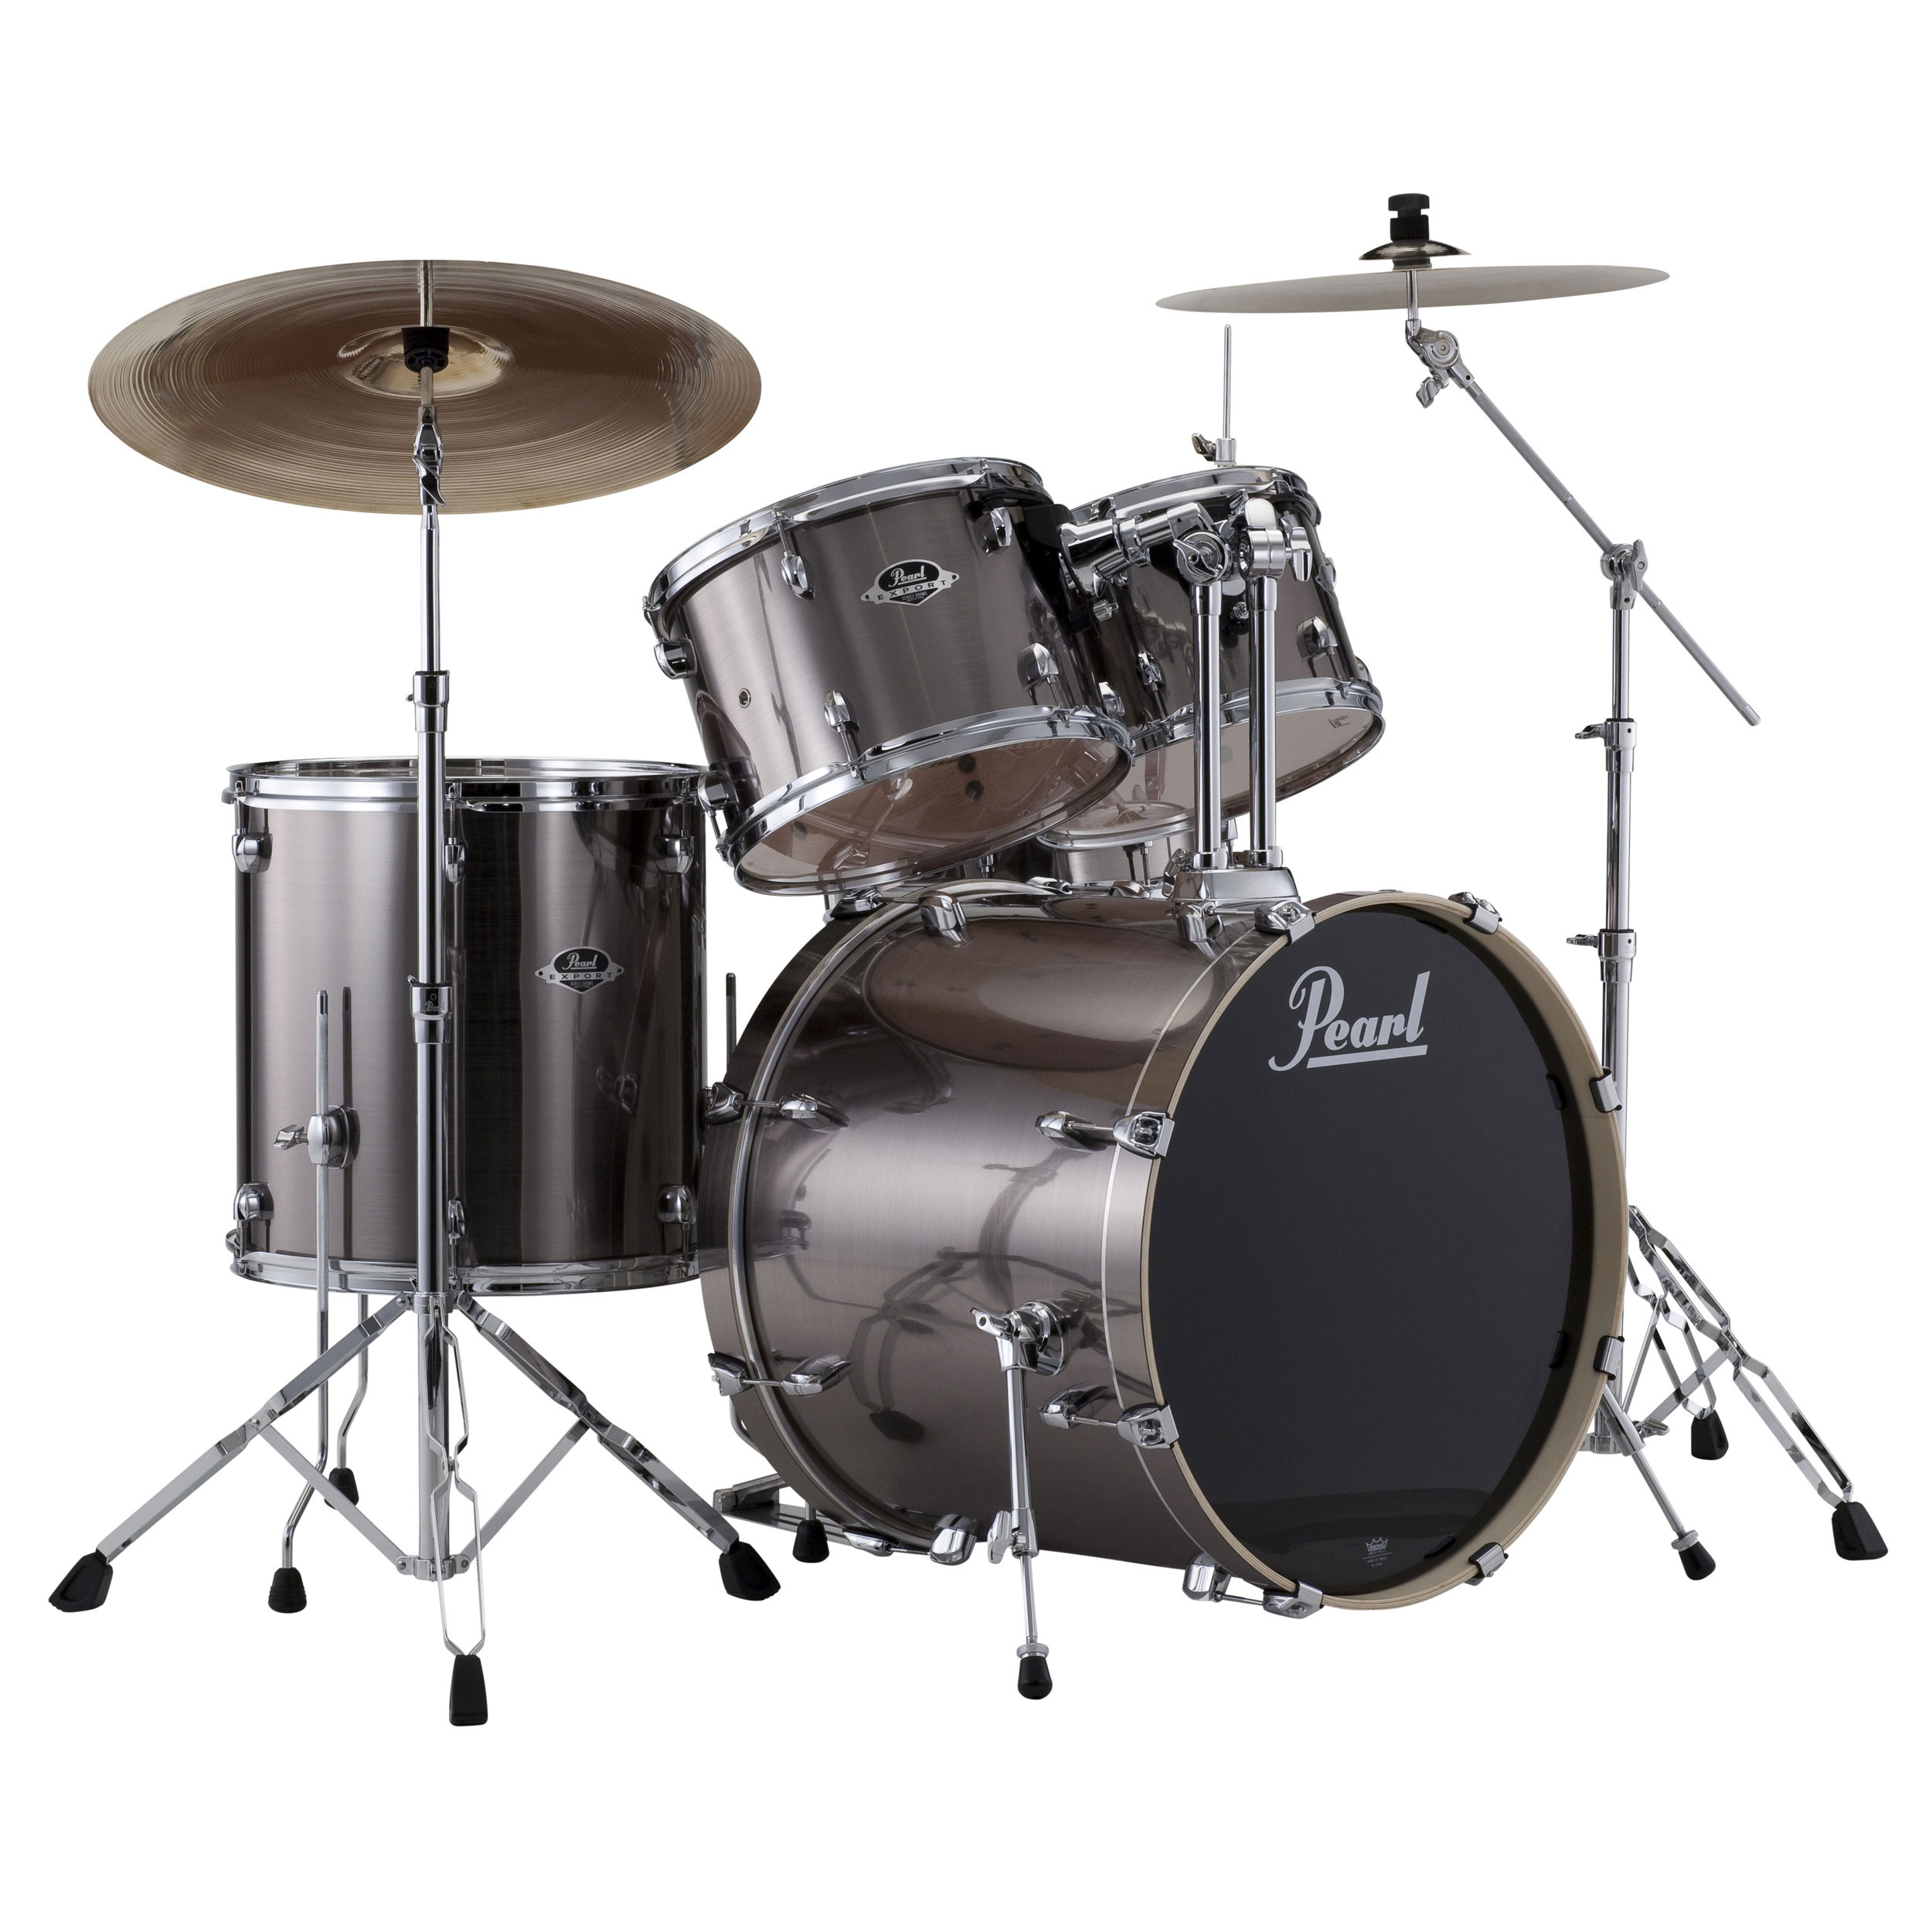 pearl exx export 5 piece drum set with hardware 22 bass 14 snare 10 12 16 toms exx725s. Black Bedroom Furniture Sets. Home Design Ideas